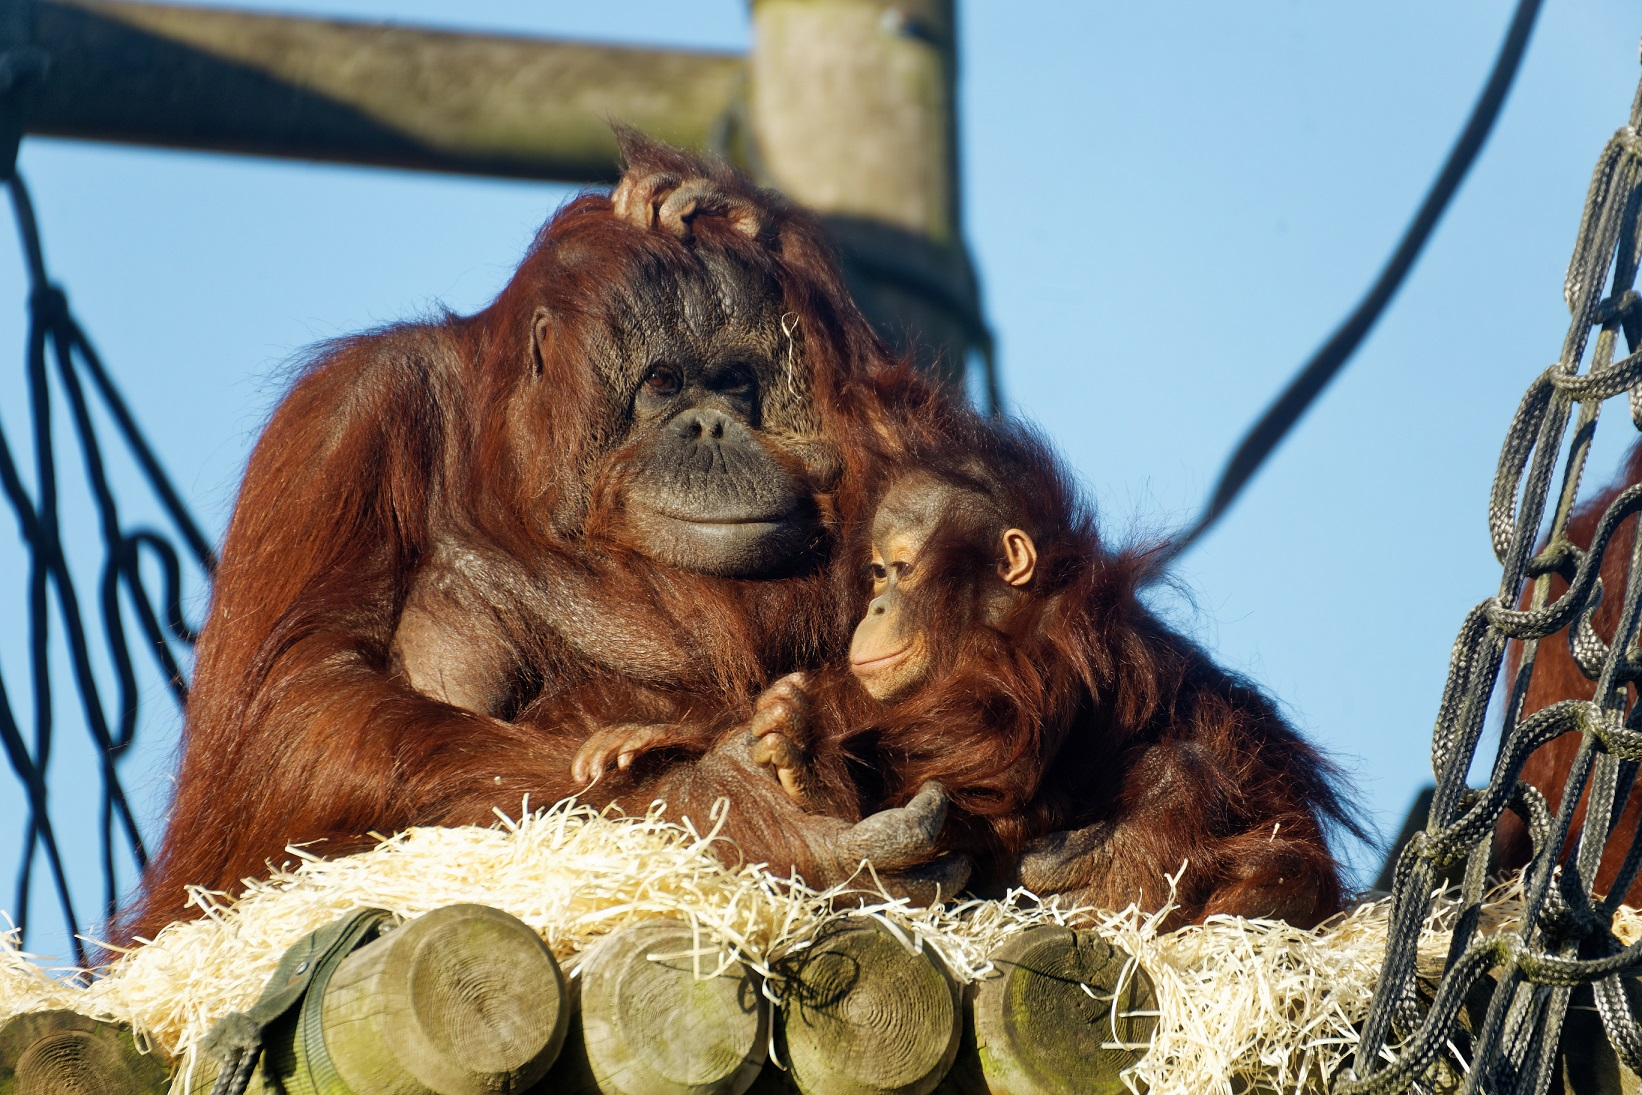 WIN AN ADVENTURE-FILLED FAMILY DAY OUT TO TWYCROSS ZOO THIS SUMMER - Derby Days Out